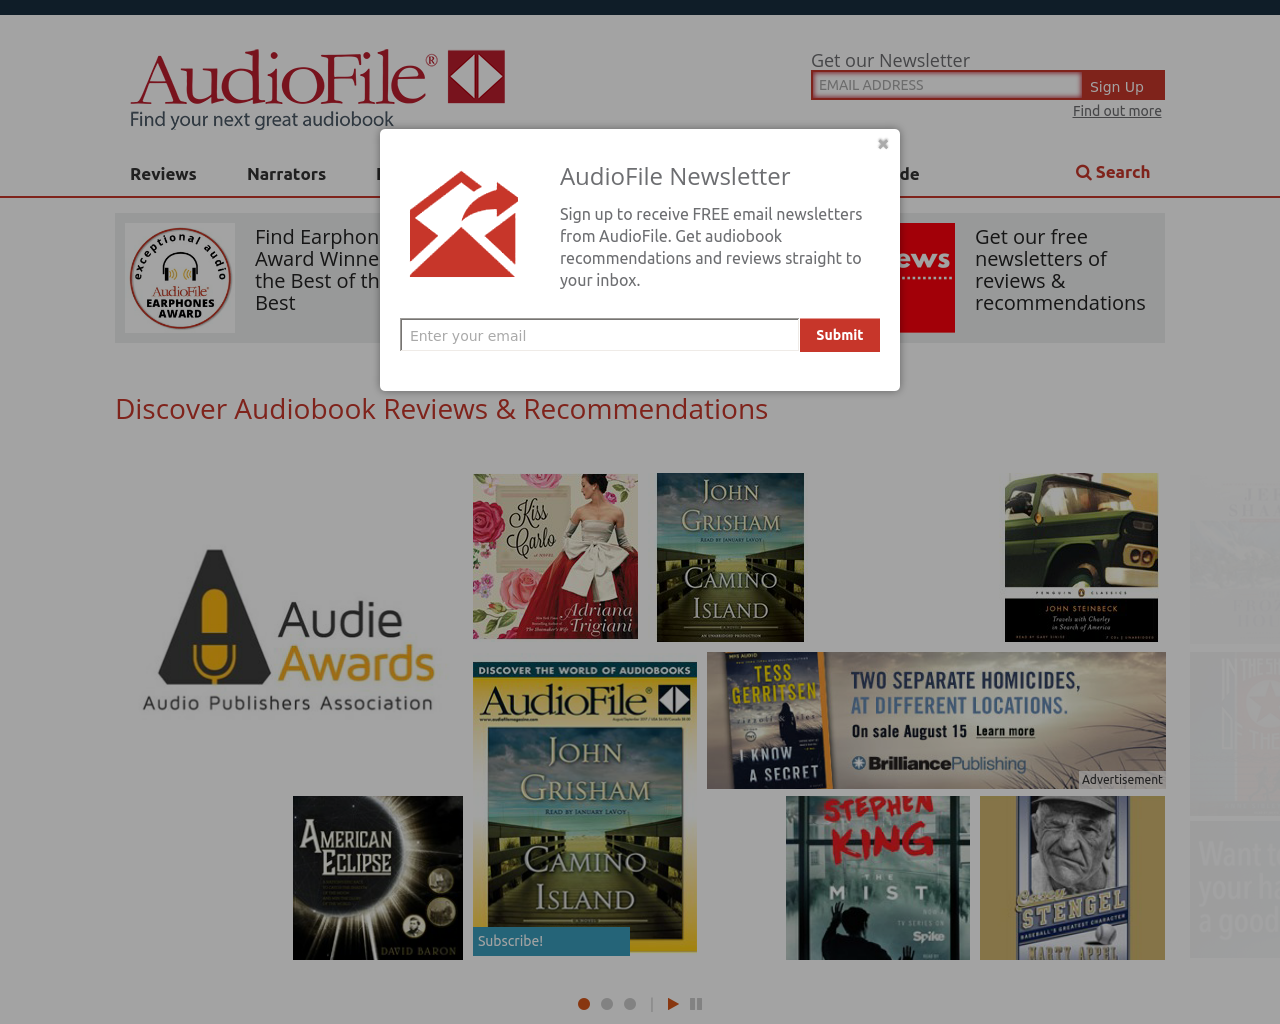 AudioFile-Magazine-Advertising-Reviews-Pricing